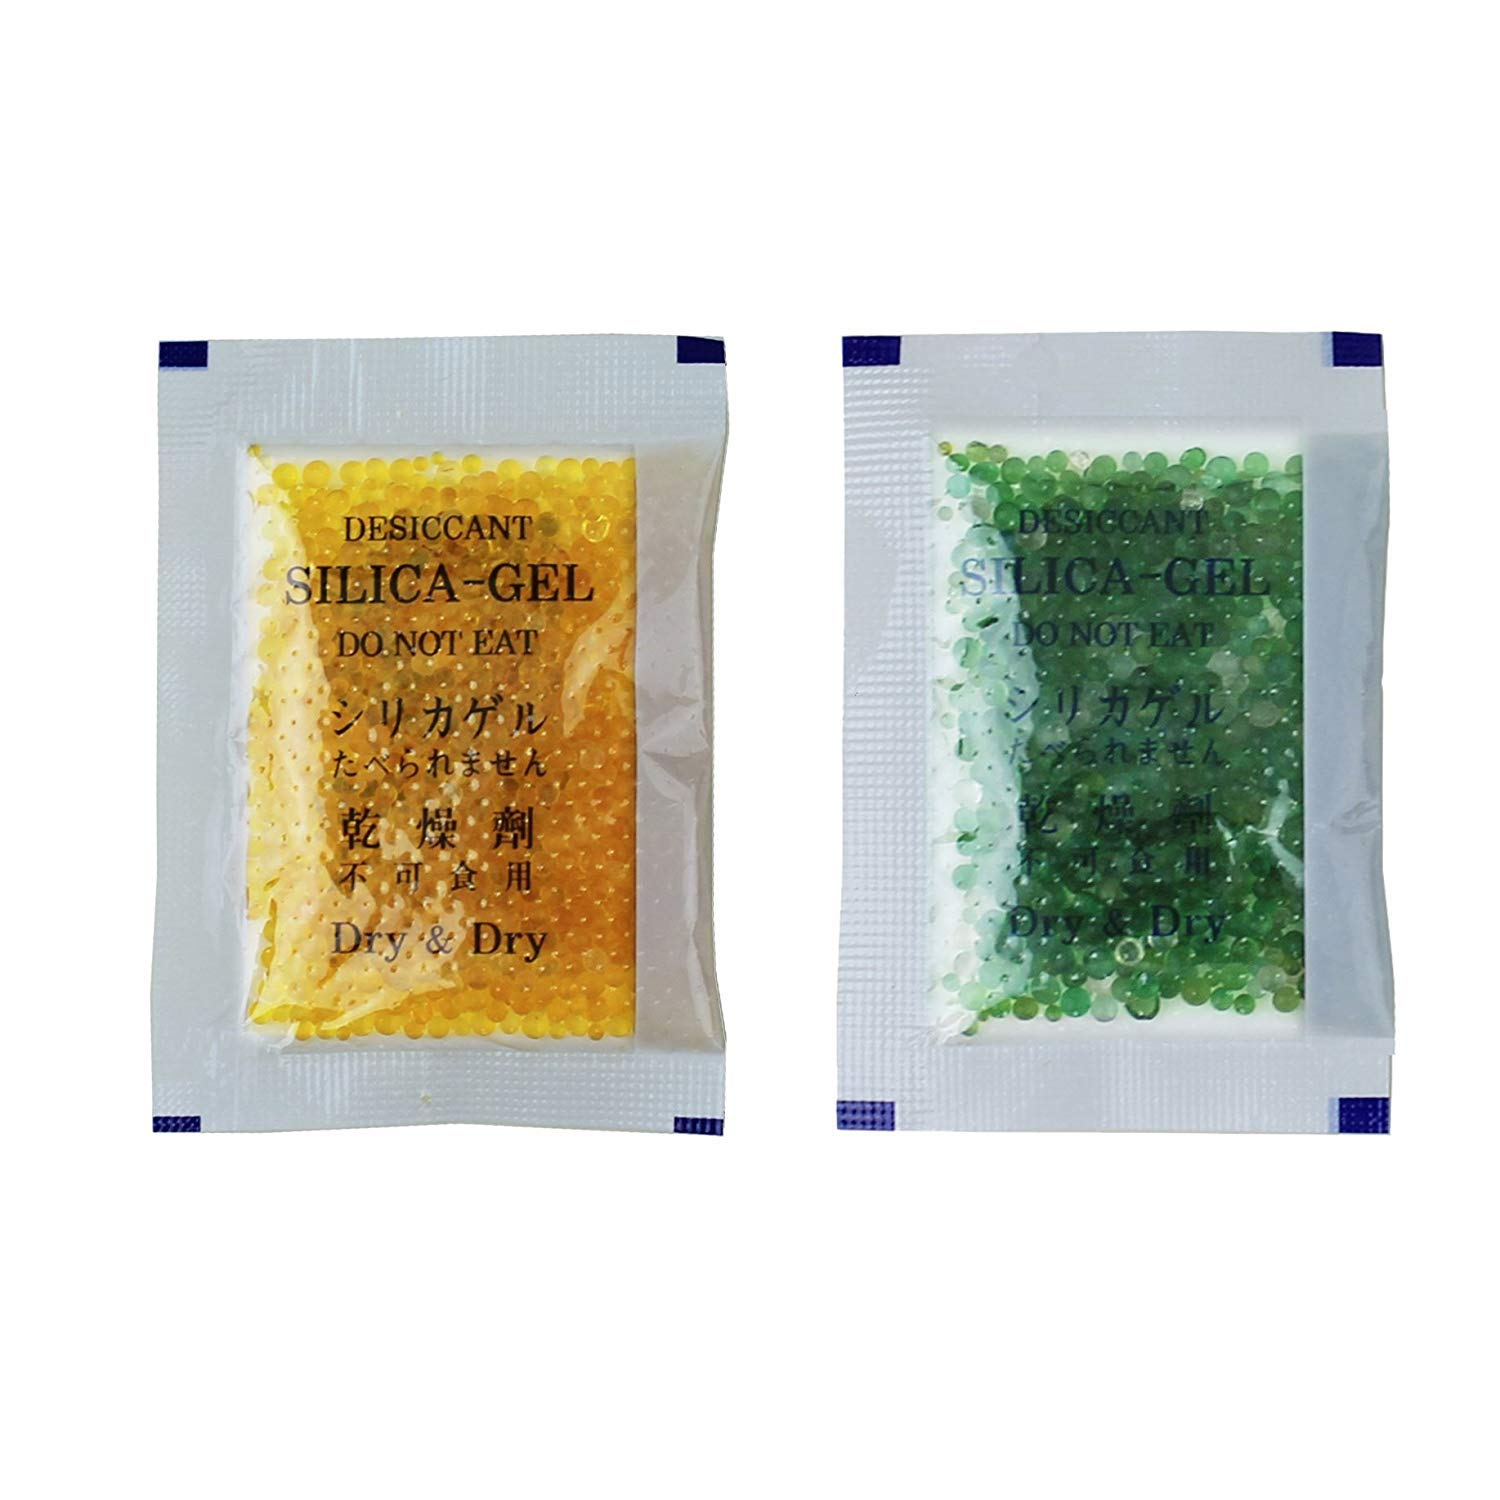 Dry & Dry 10 Gram [15 Packets] Premium Silica Gel Orange Indicating(Orange to Dark Green) Silica Gel Packets Desiccant Dehumidifier - Rechargeable Silica Packets for Moisture Absorber Silica Gel Packs